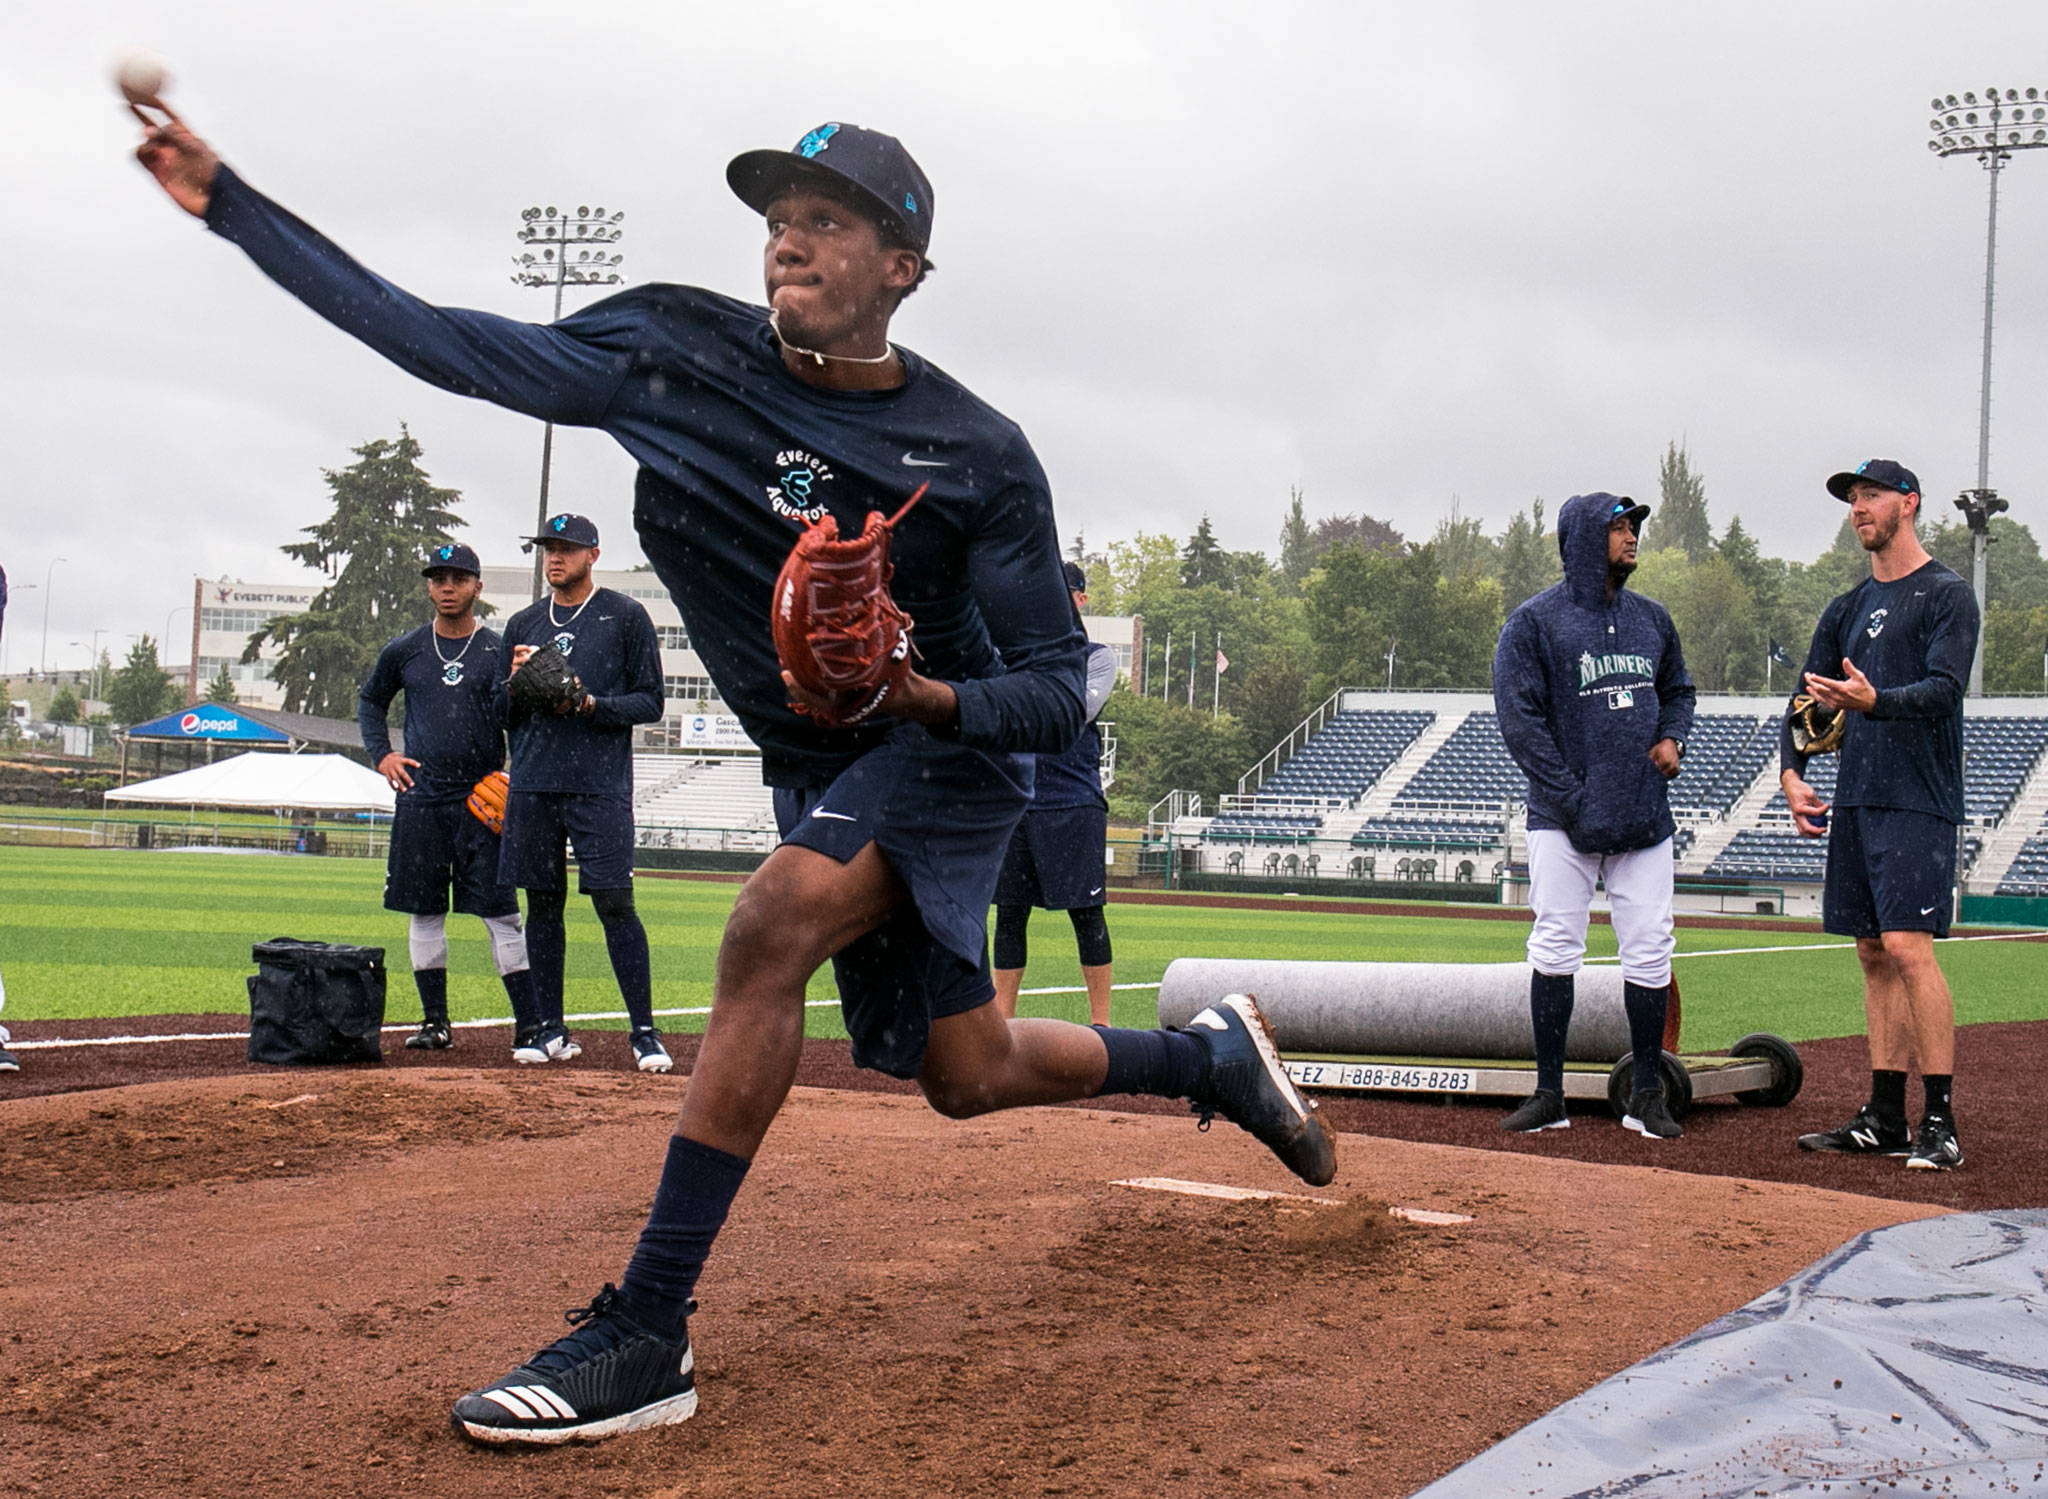 Dayeison Arias throws a pitch during practice at Everett Memorial Stadium in Everett Wednesday afternoon on June 12, 2018. (Kevin Clark / The Herald)